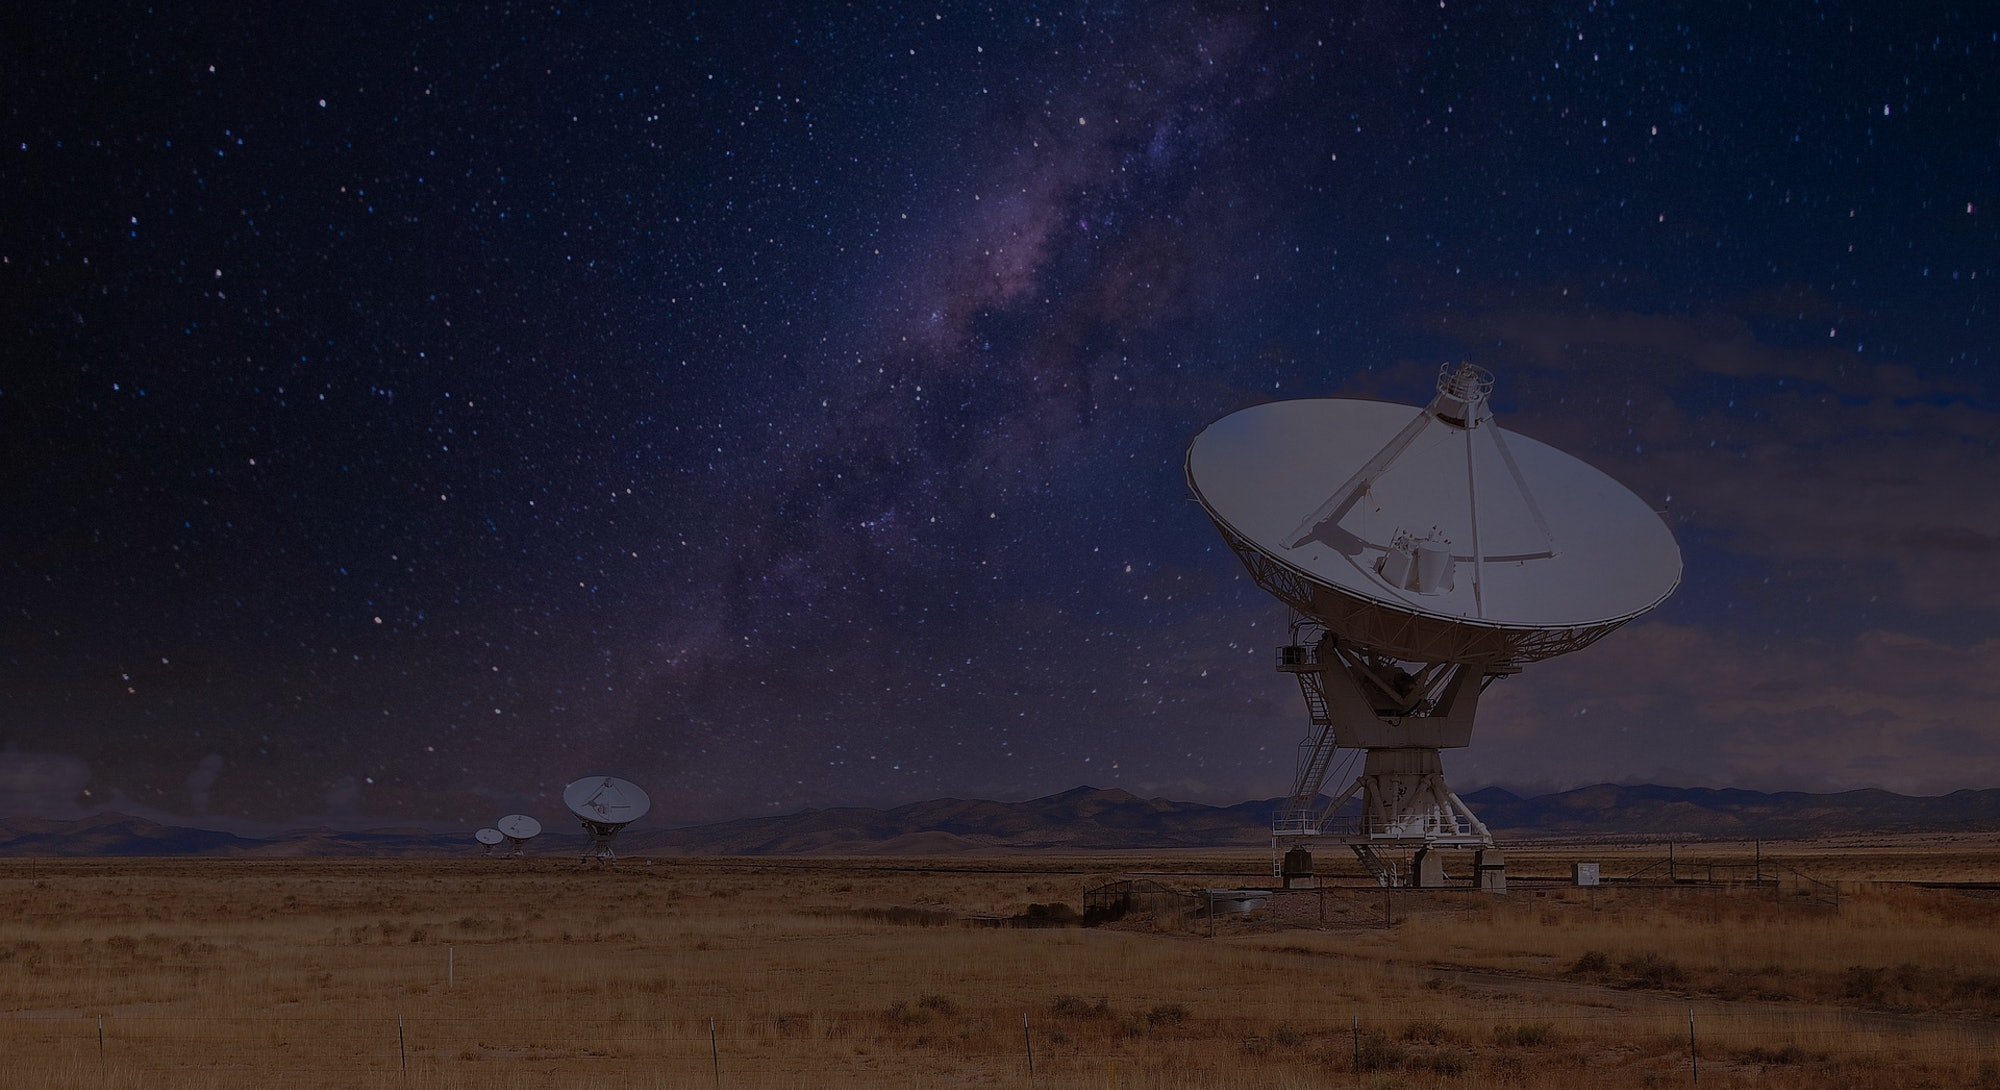 The Very Large Array telescope with a starry background